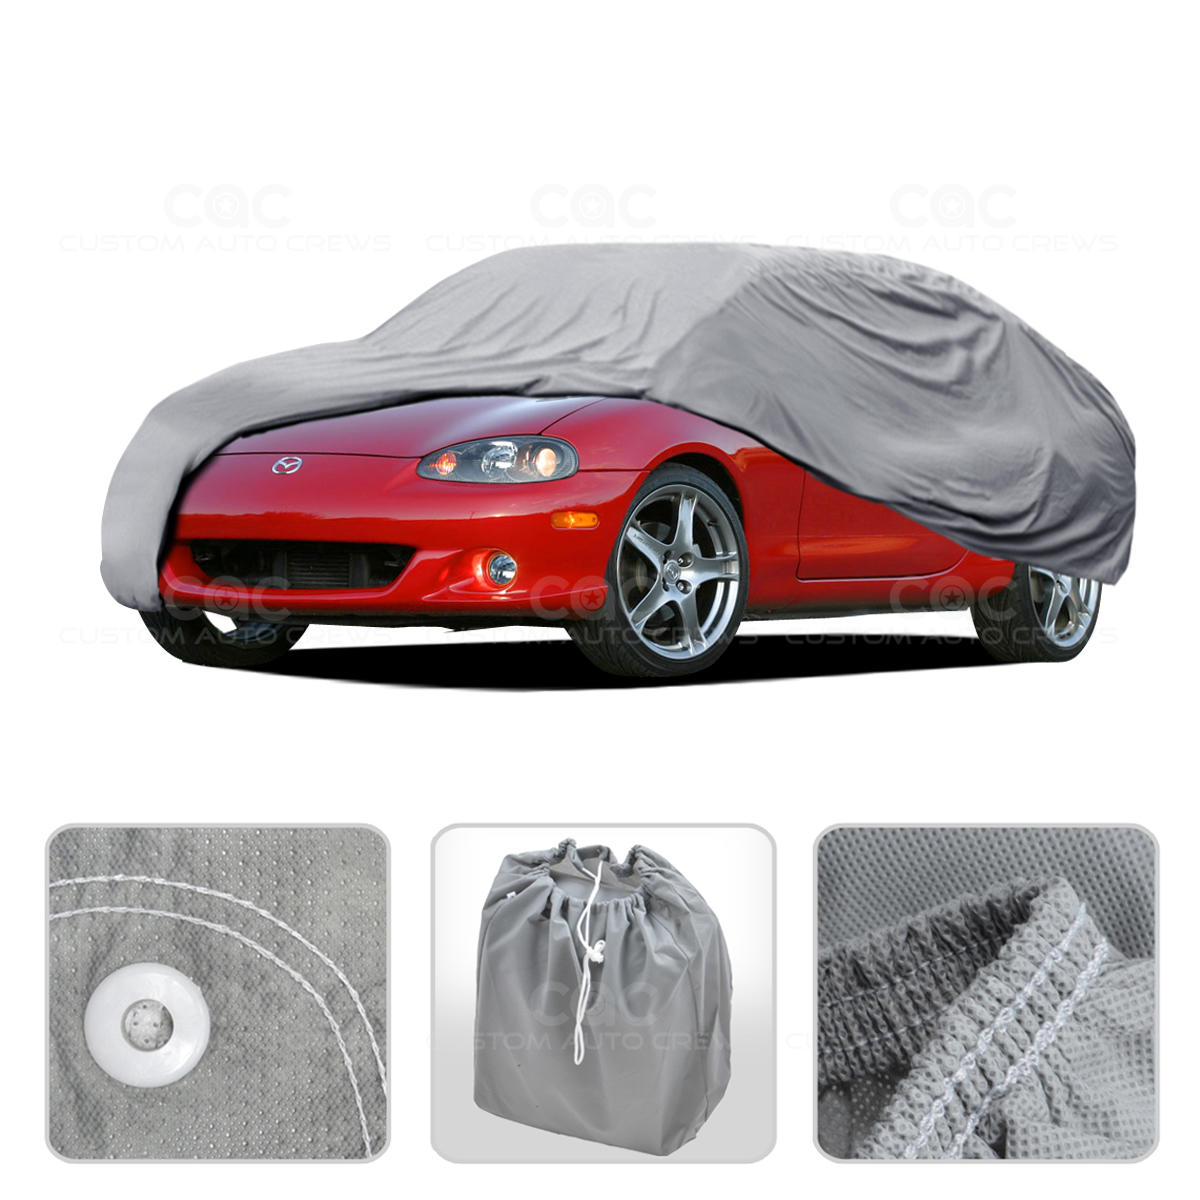 car cover for dodge colt outdoor breathable sun dust proof auto protection ebay. Black Bedroom Furniture Sets. Home Design Ideas